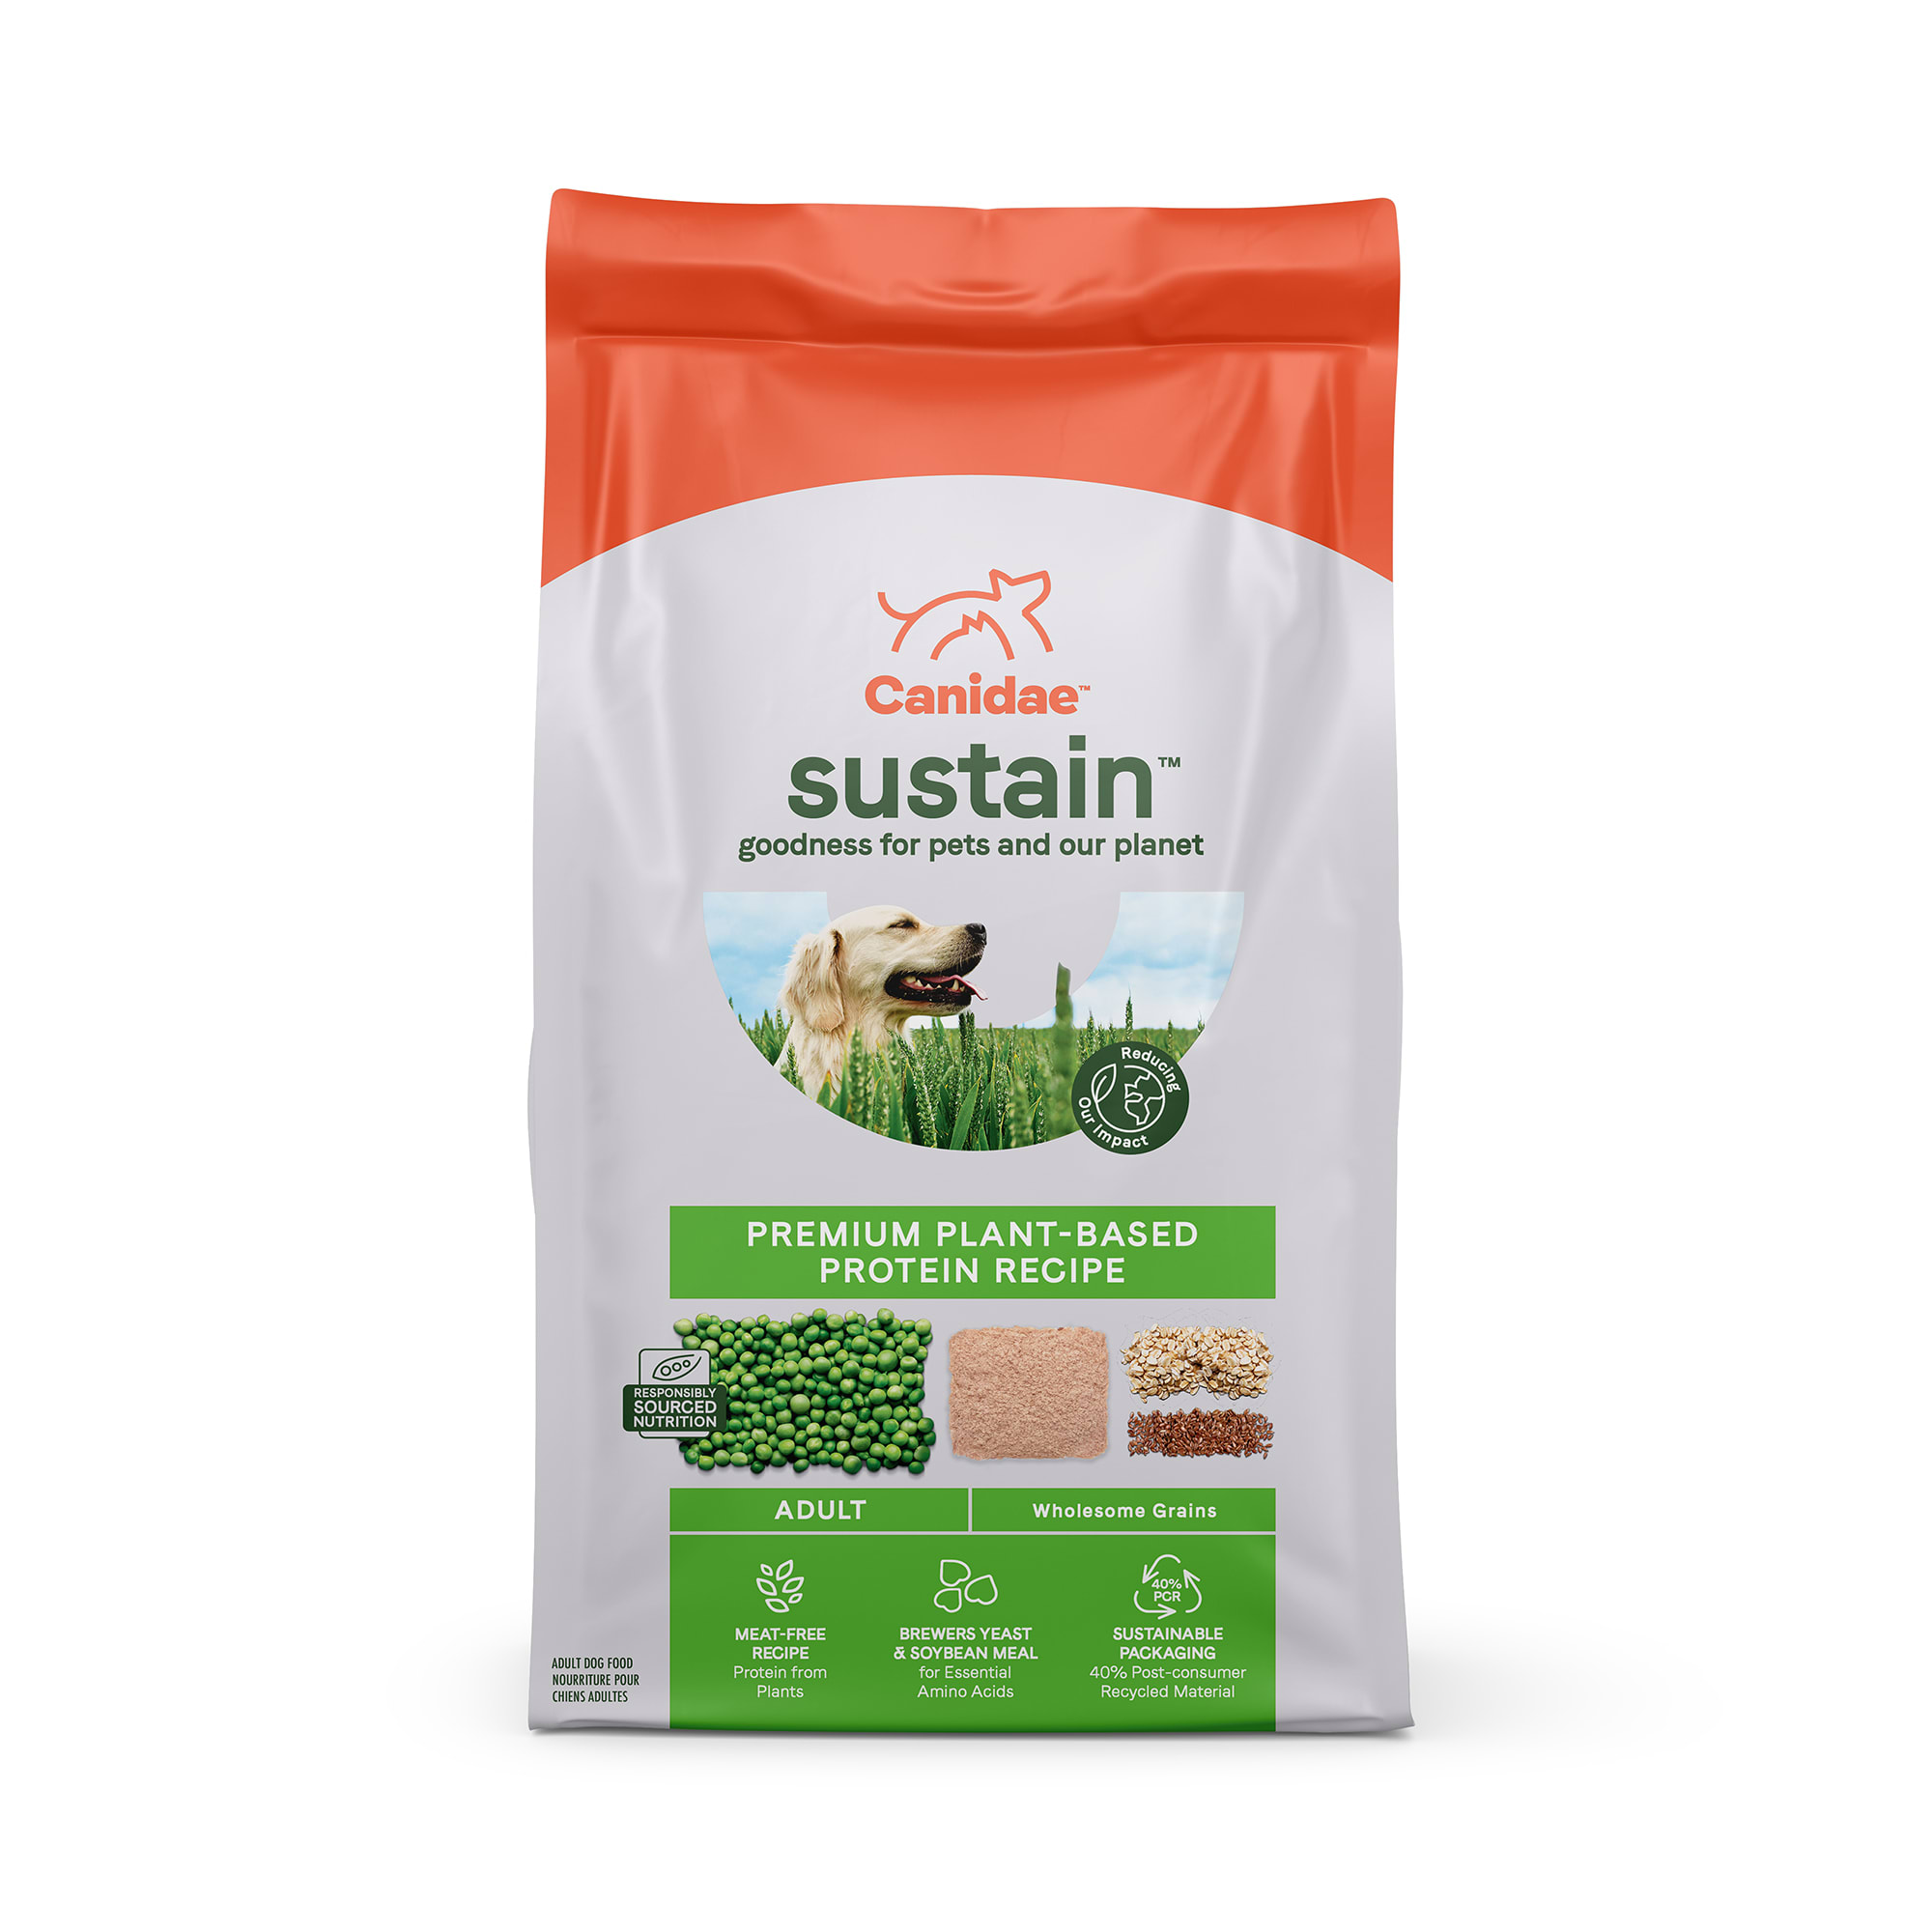 Canidae Sustain Premium Plant-Based Protein Recipe Adult Dry Dog Food, 18 lbs.